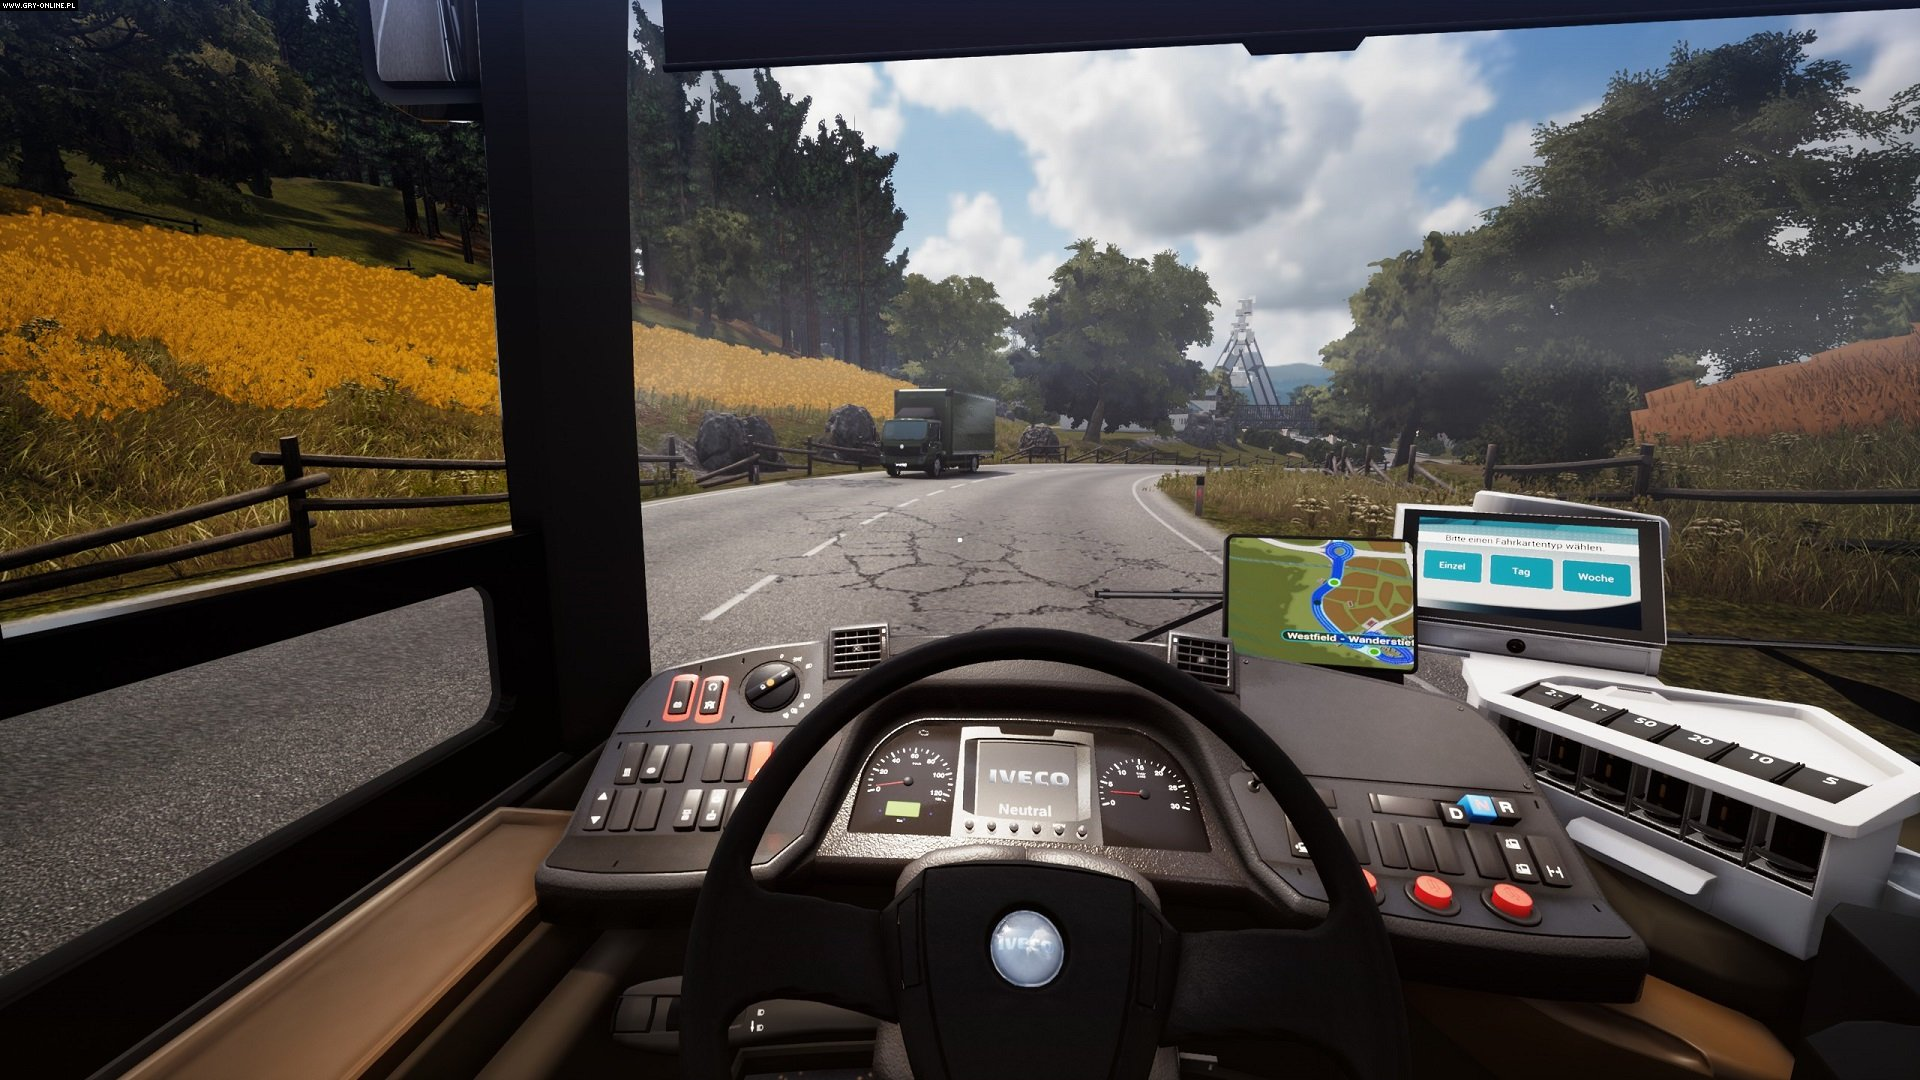 Bus Simulator 18 PC Games Image 3/25,  StillAlive, astragon Entertainment